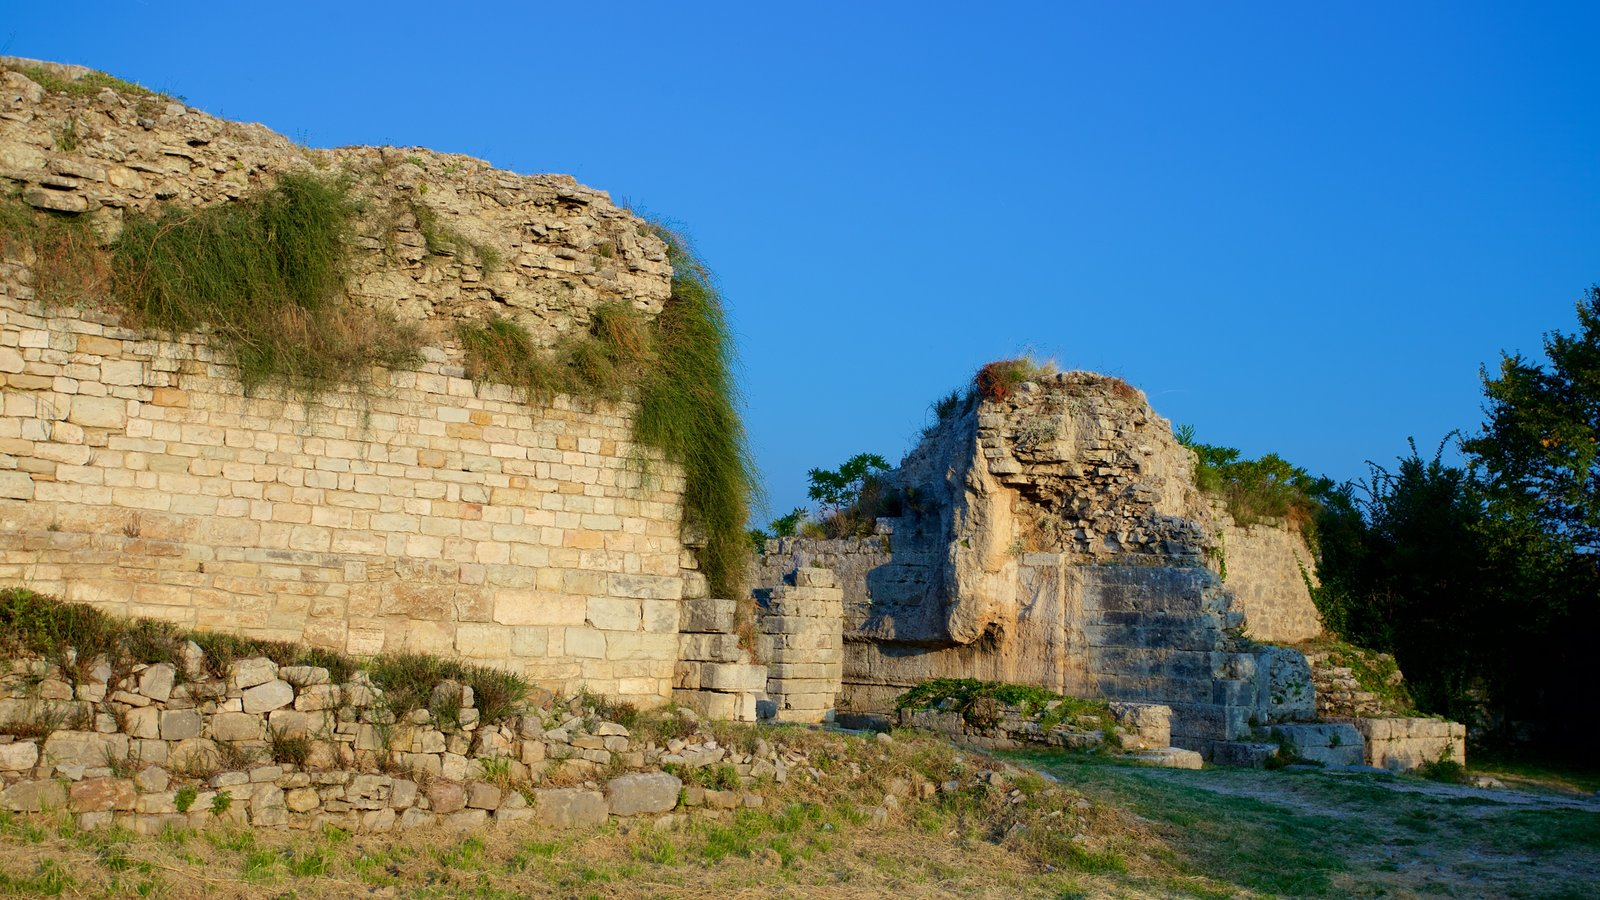 Salona Ruins showing heritage elements and a ruin